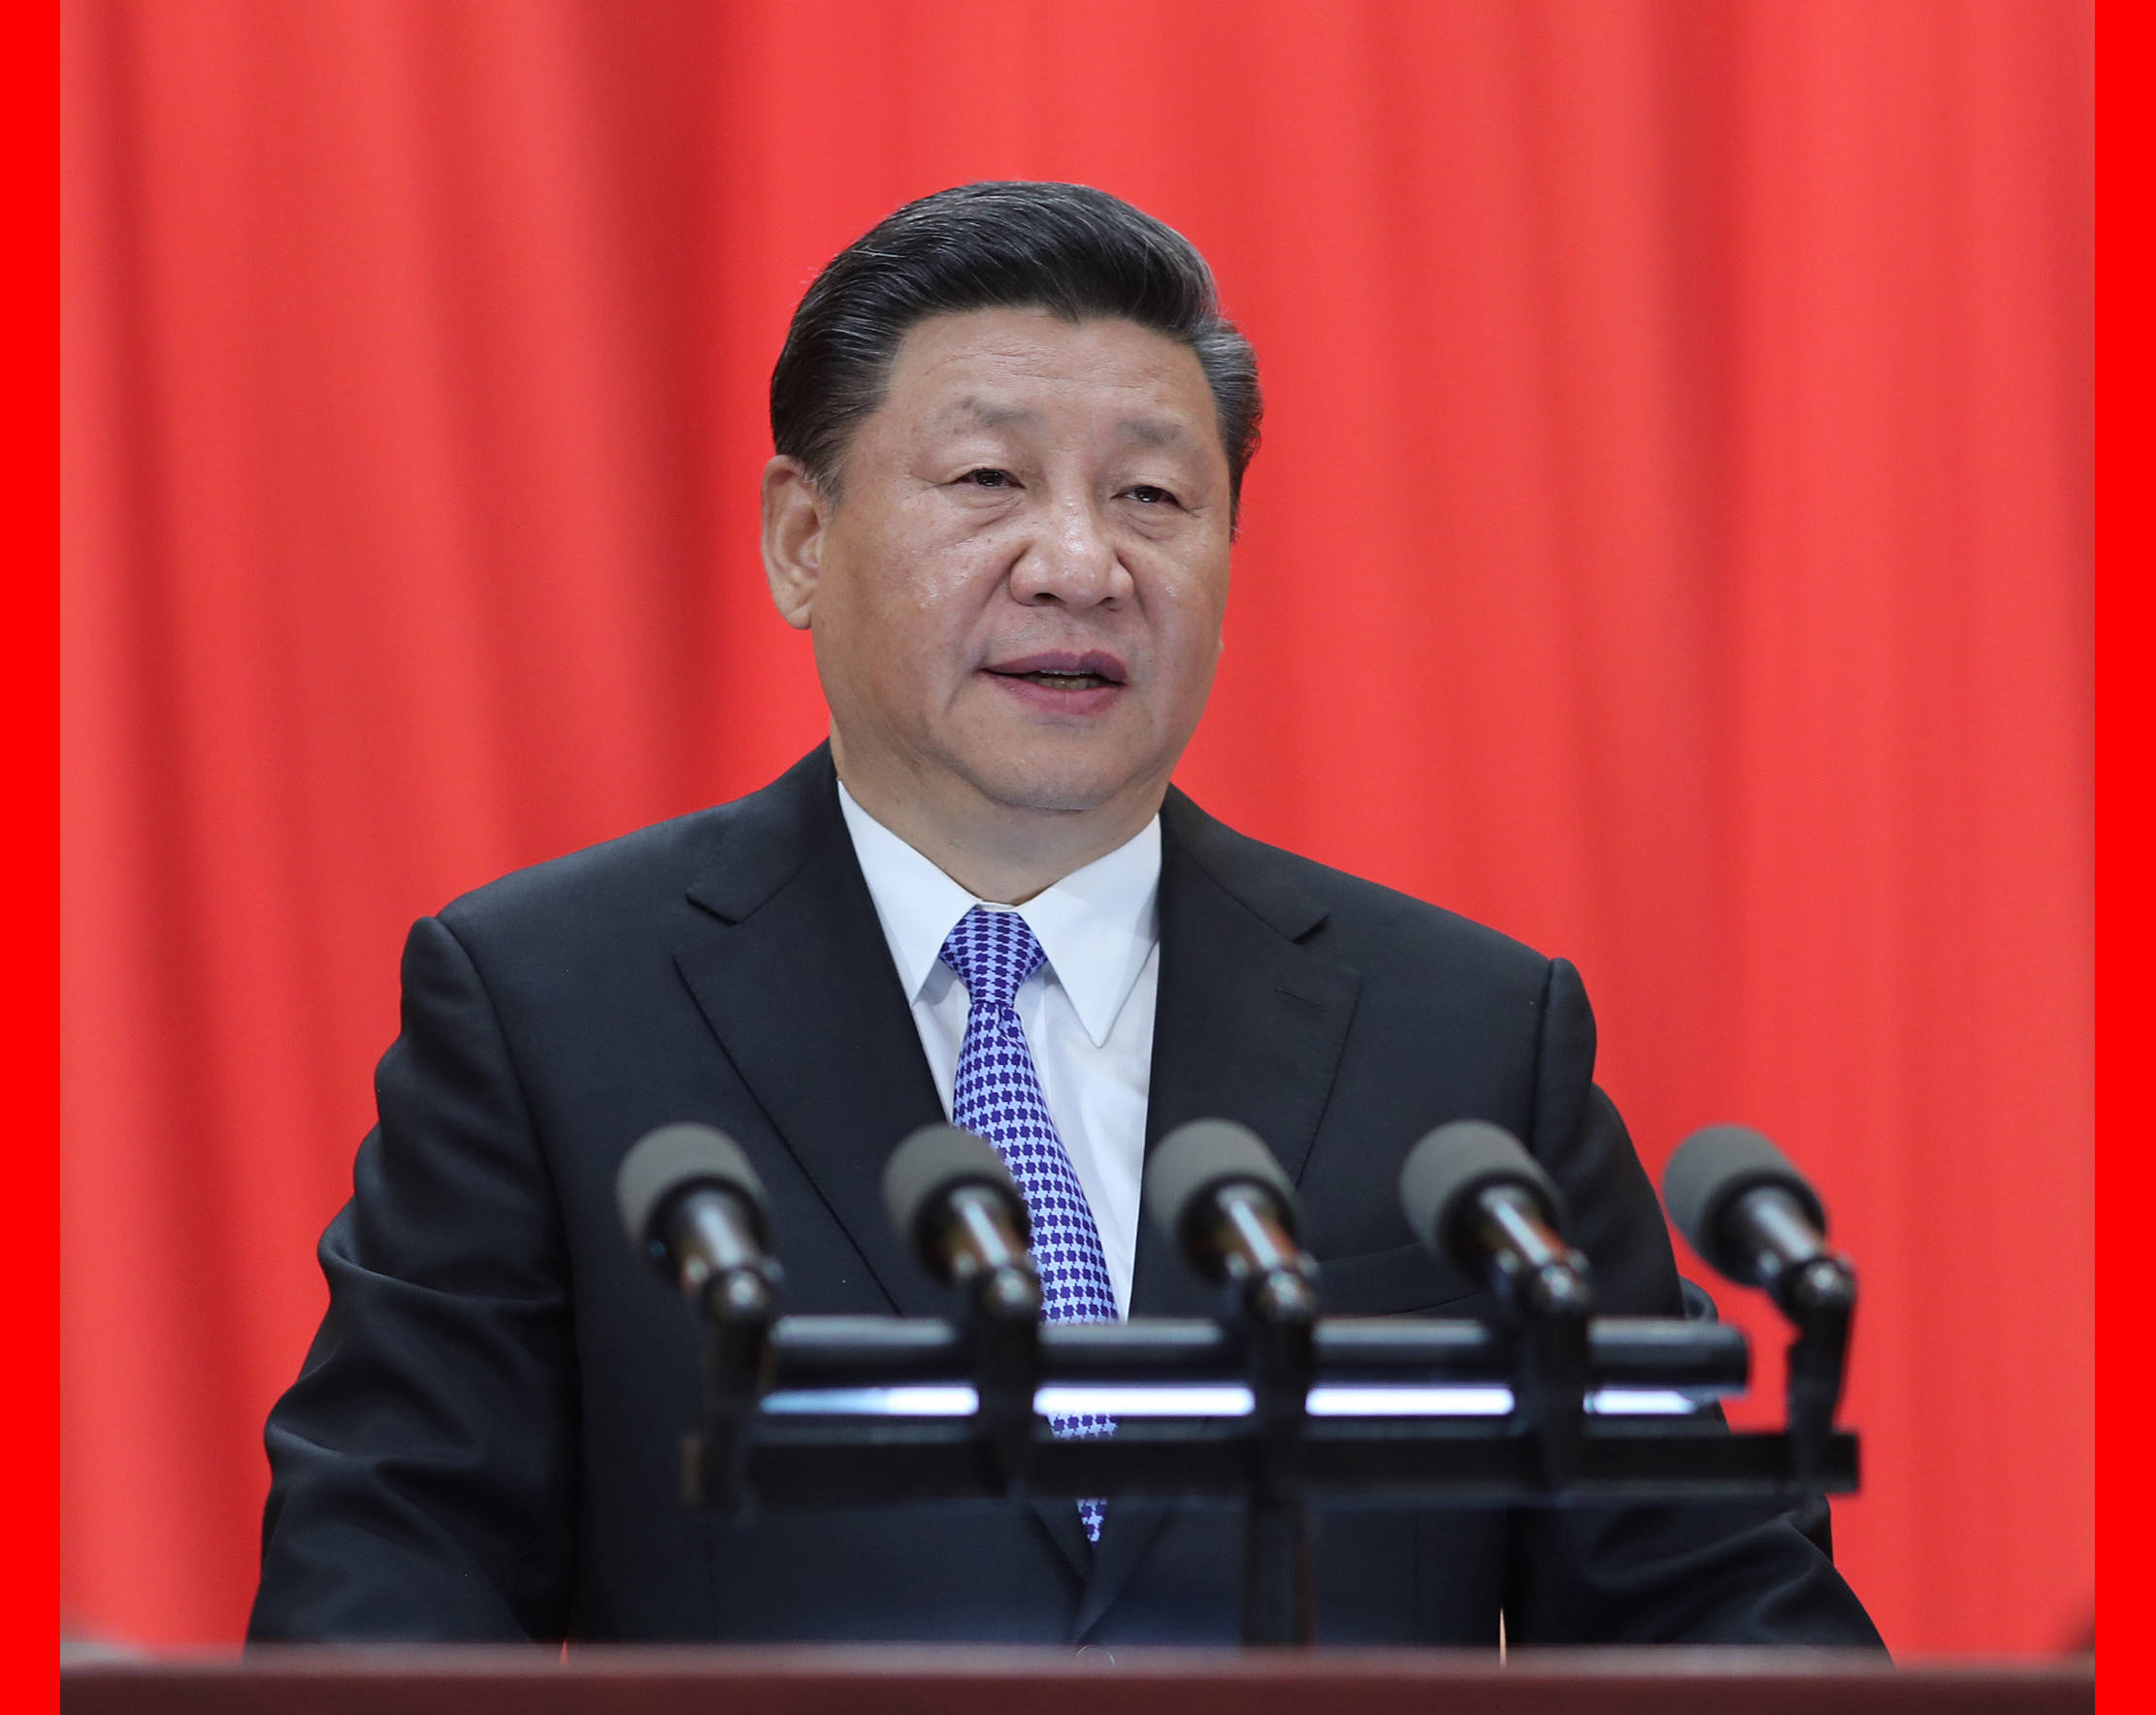 Xi calls on China, U.S. to maintain communication on trade issue